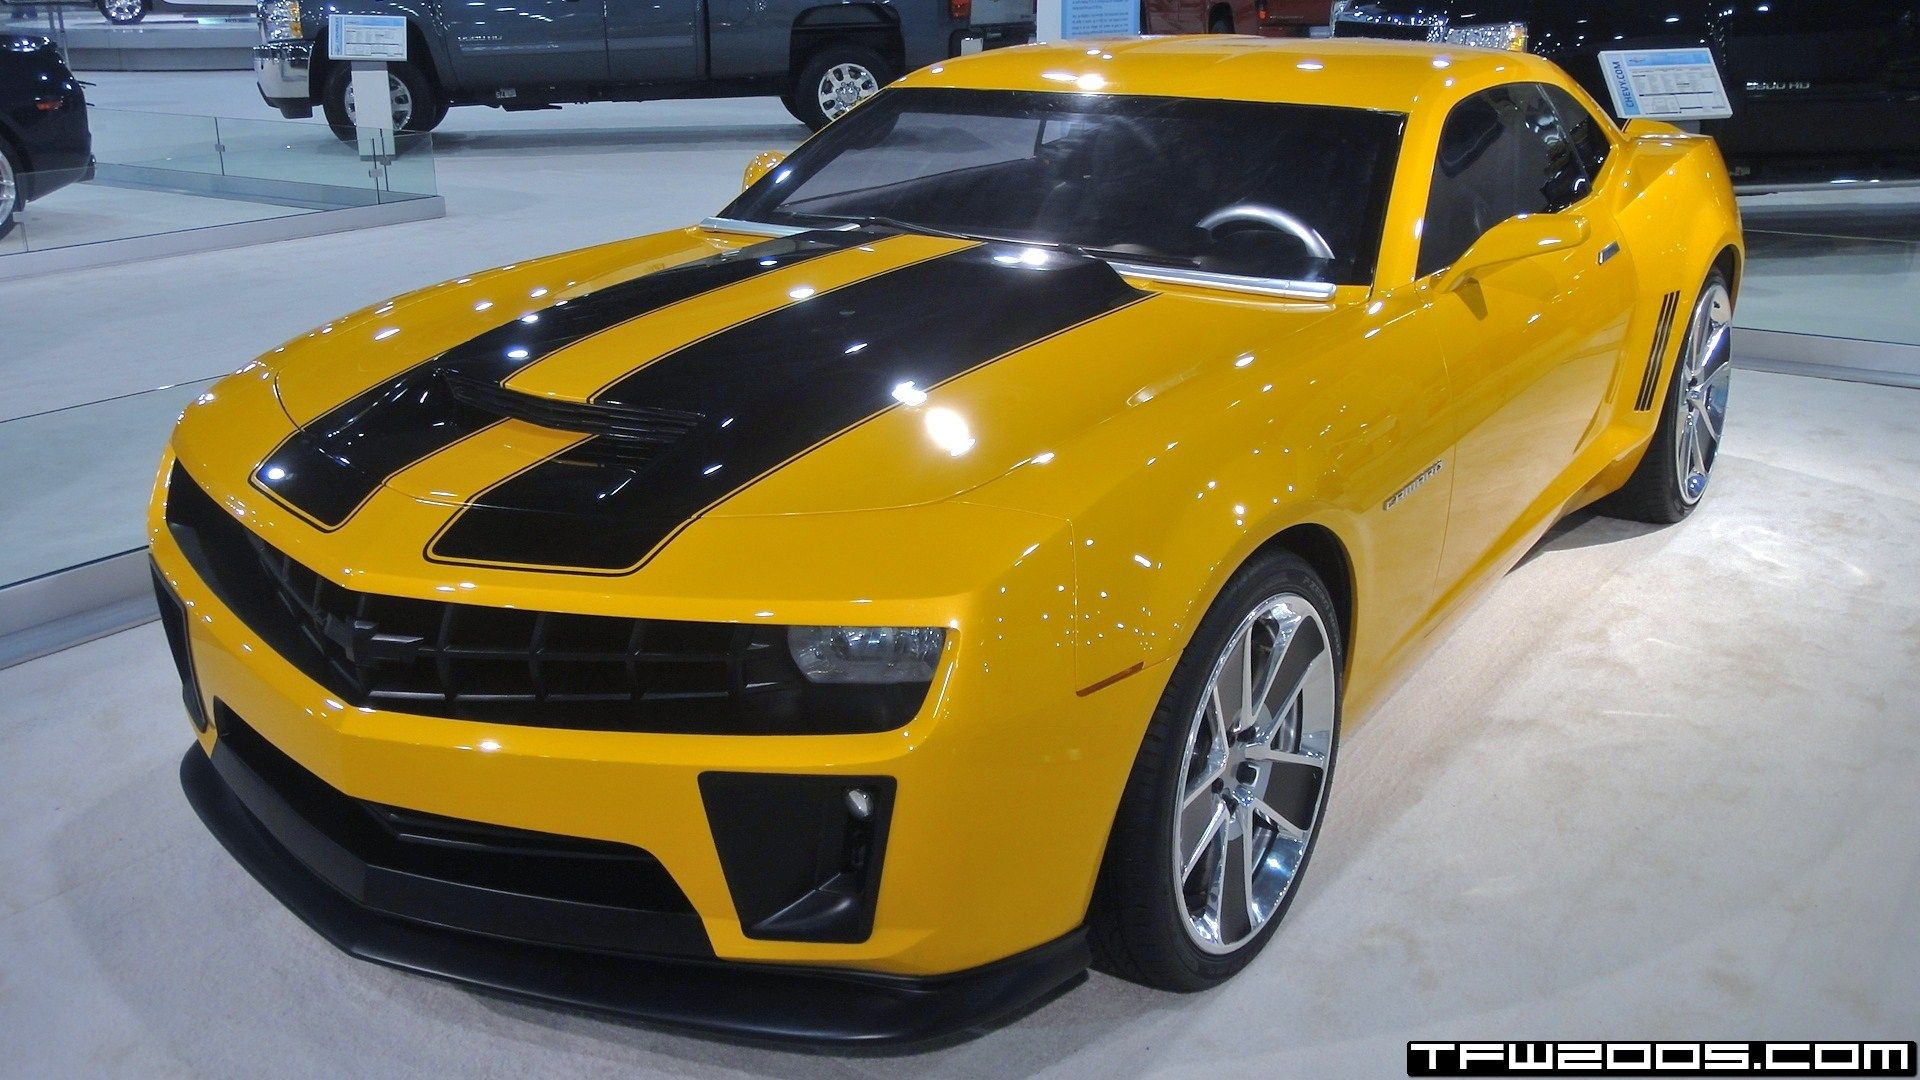 Transformers Revenge Of The Fallen Blebee One My Dream Cars